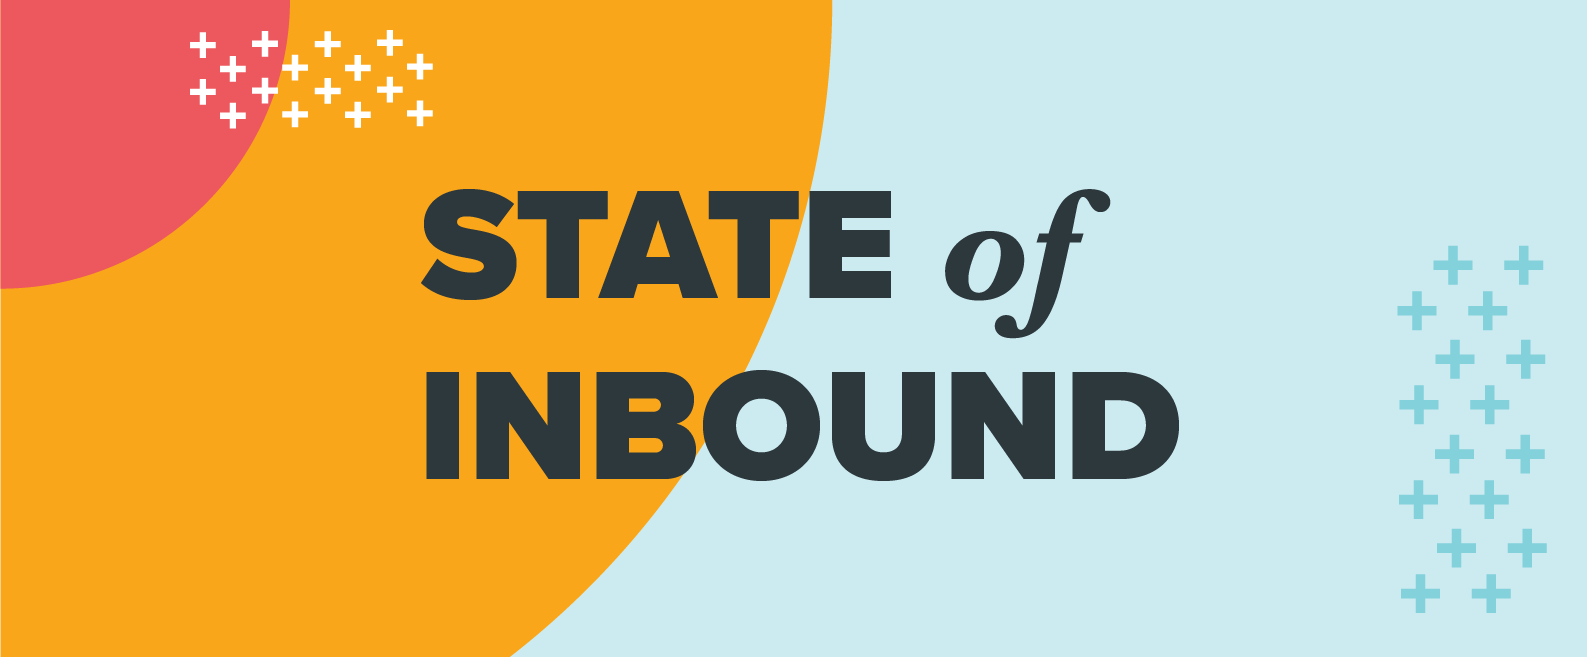 State of Inbound 2017: Your Go-To Business Report for Marketing and Sales Research [New Data]